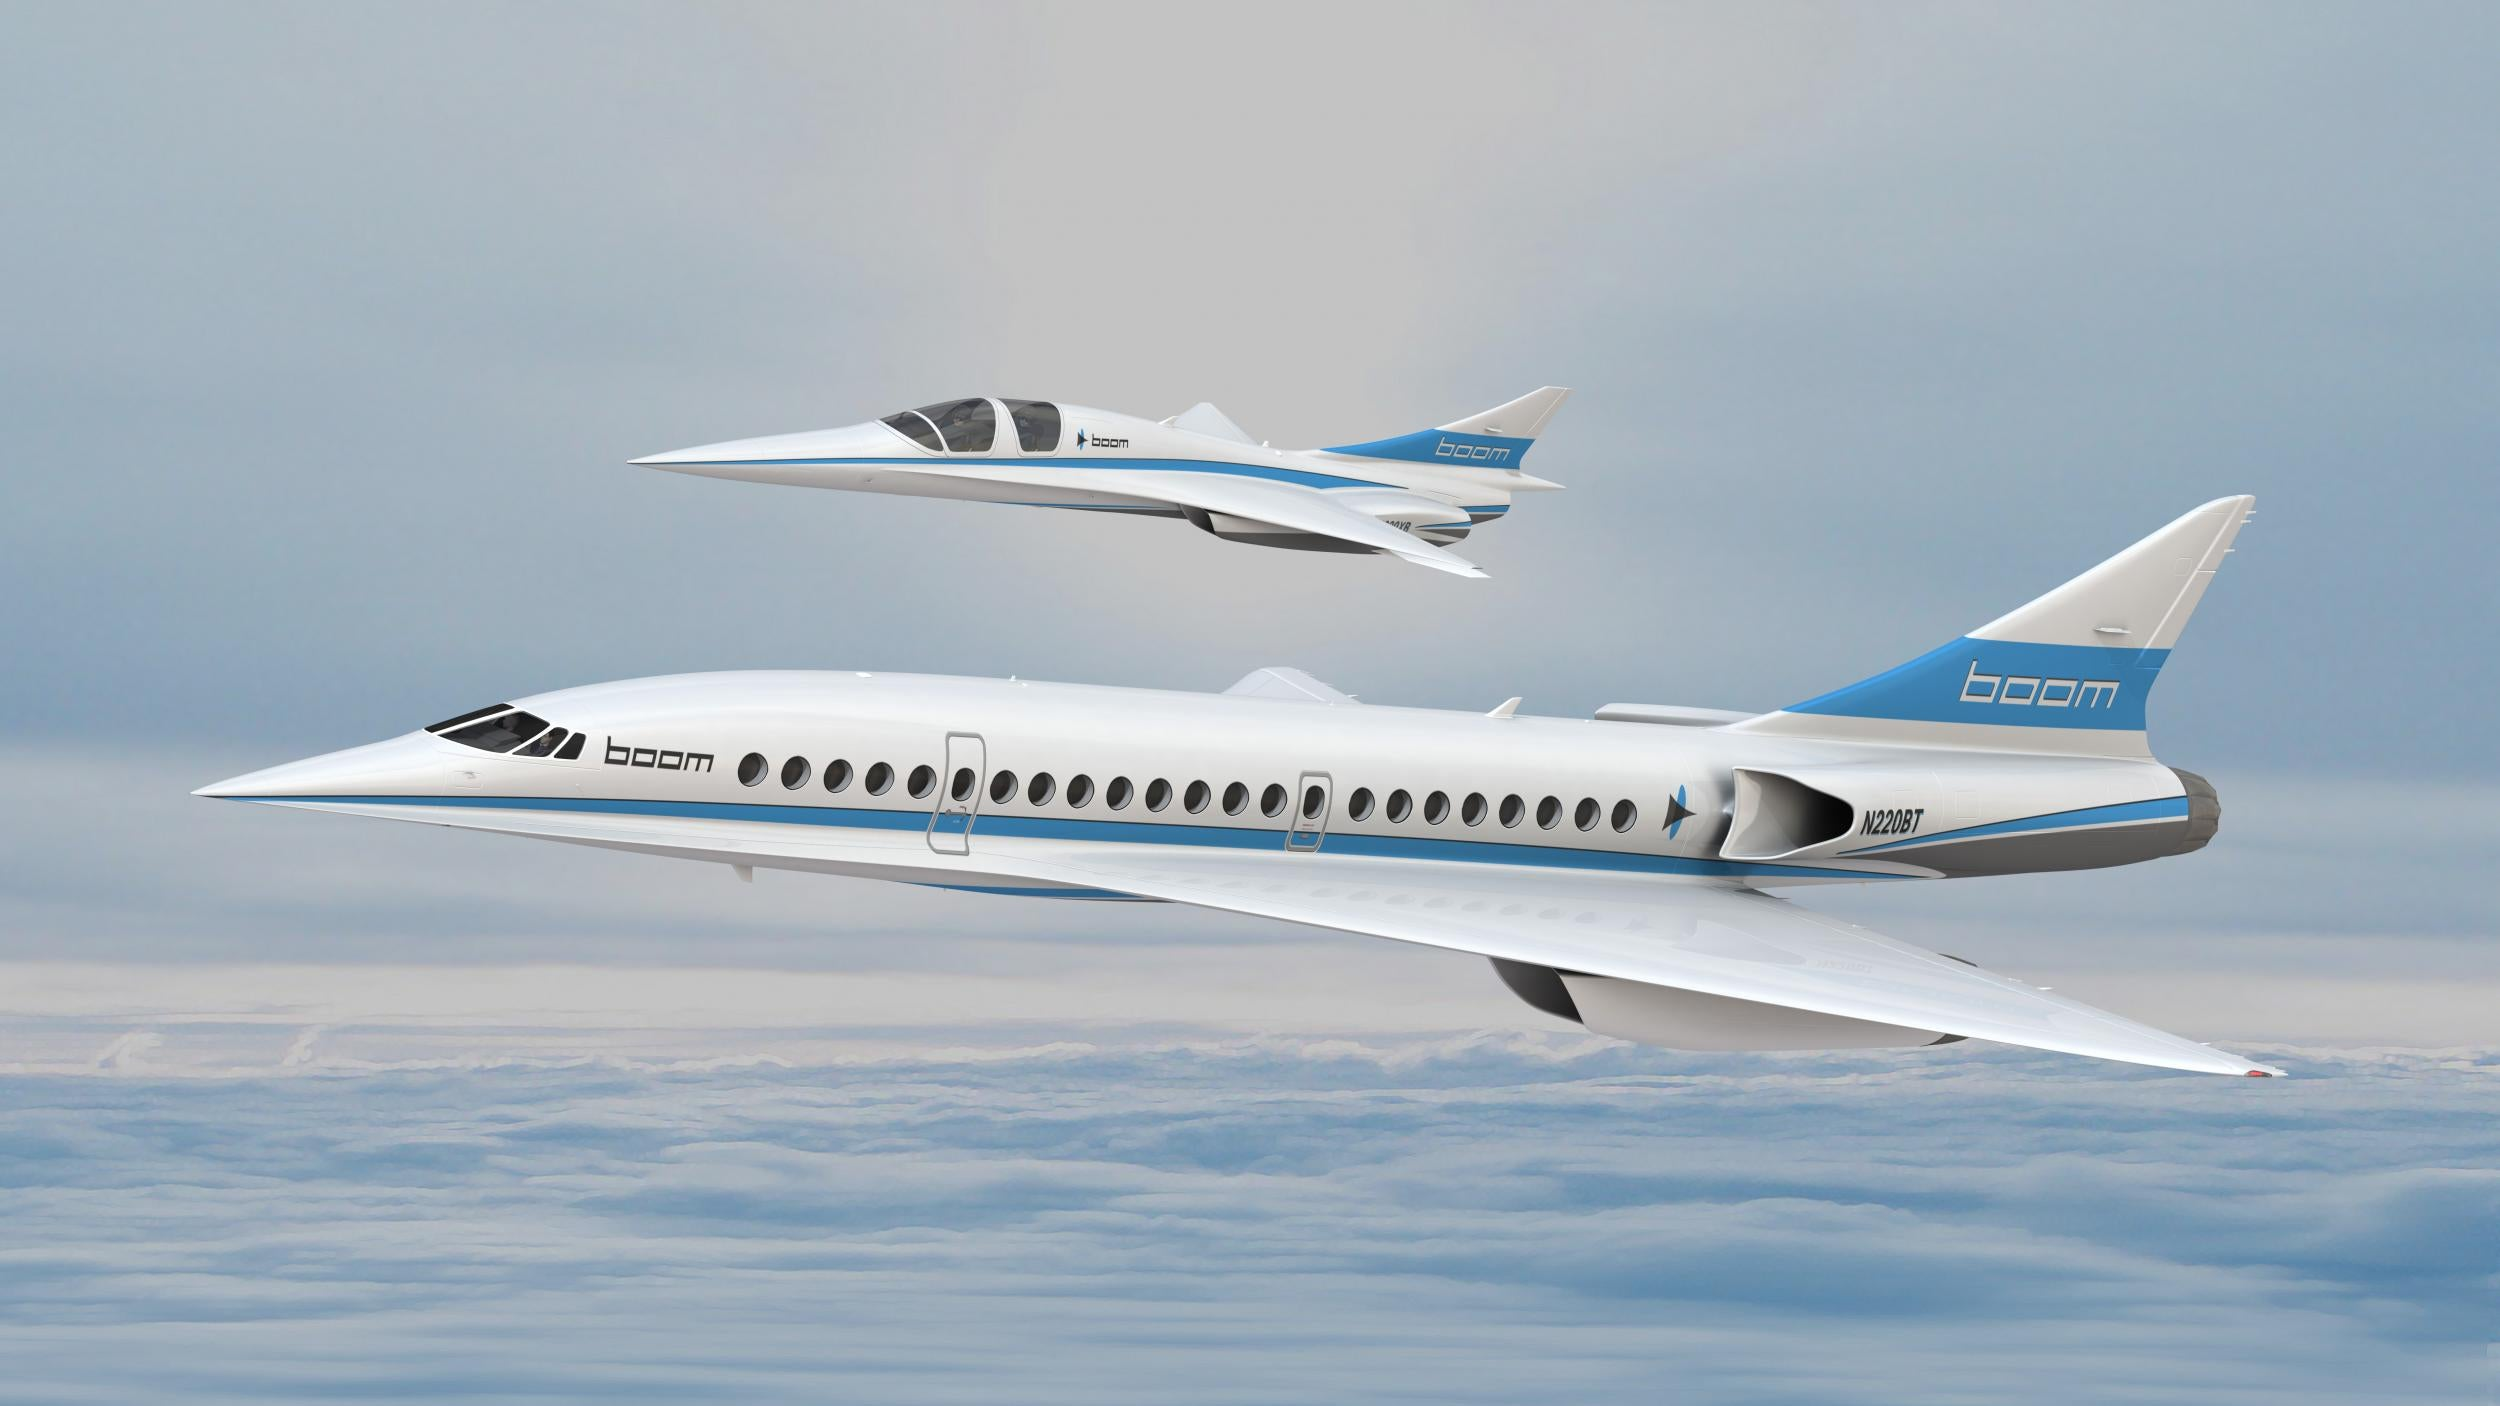 Son of Concorde: Supersonic passenger jet to take off next year